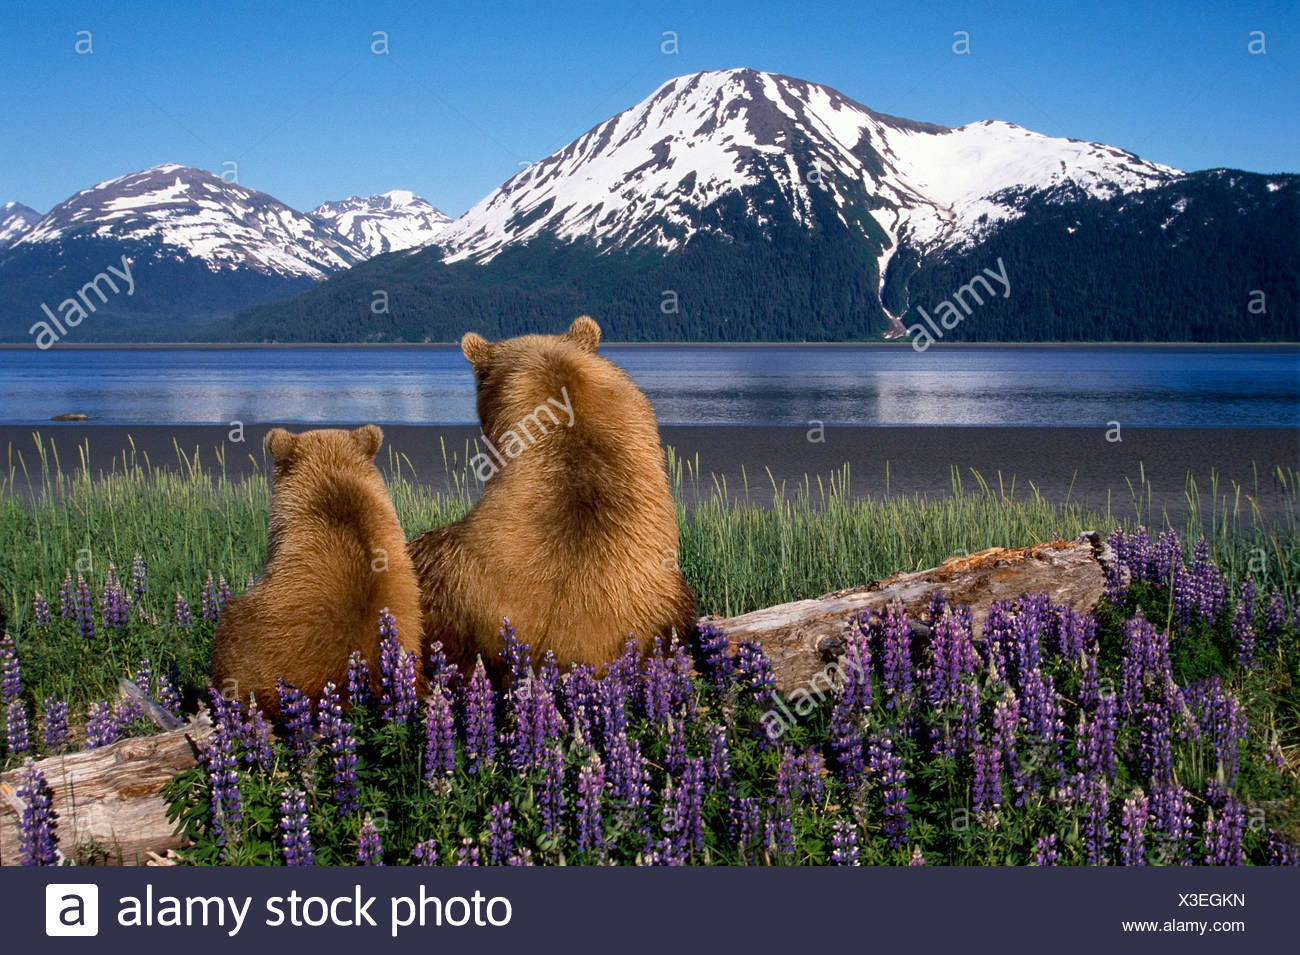 Grizzly Sow & cub sit on log & view Turnagain Arm Southcentral Alaska Digital Composite - Stock Image